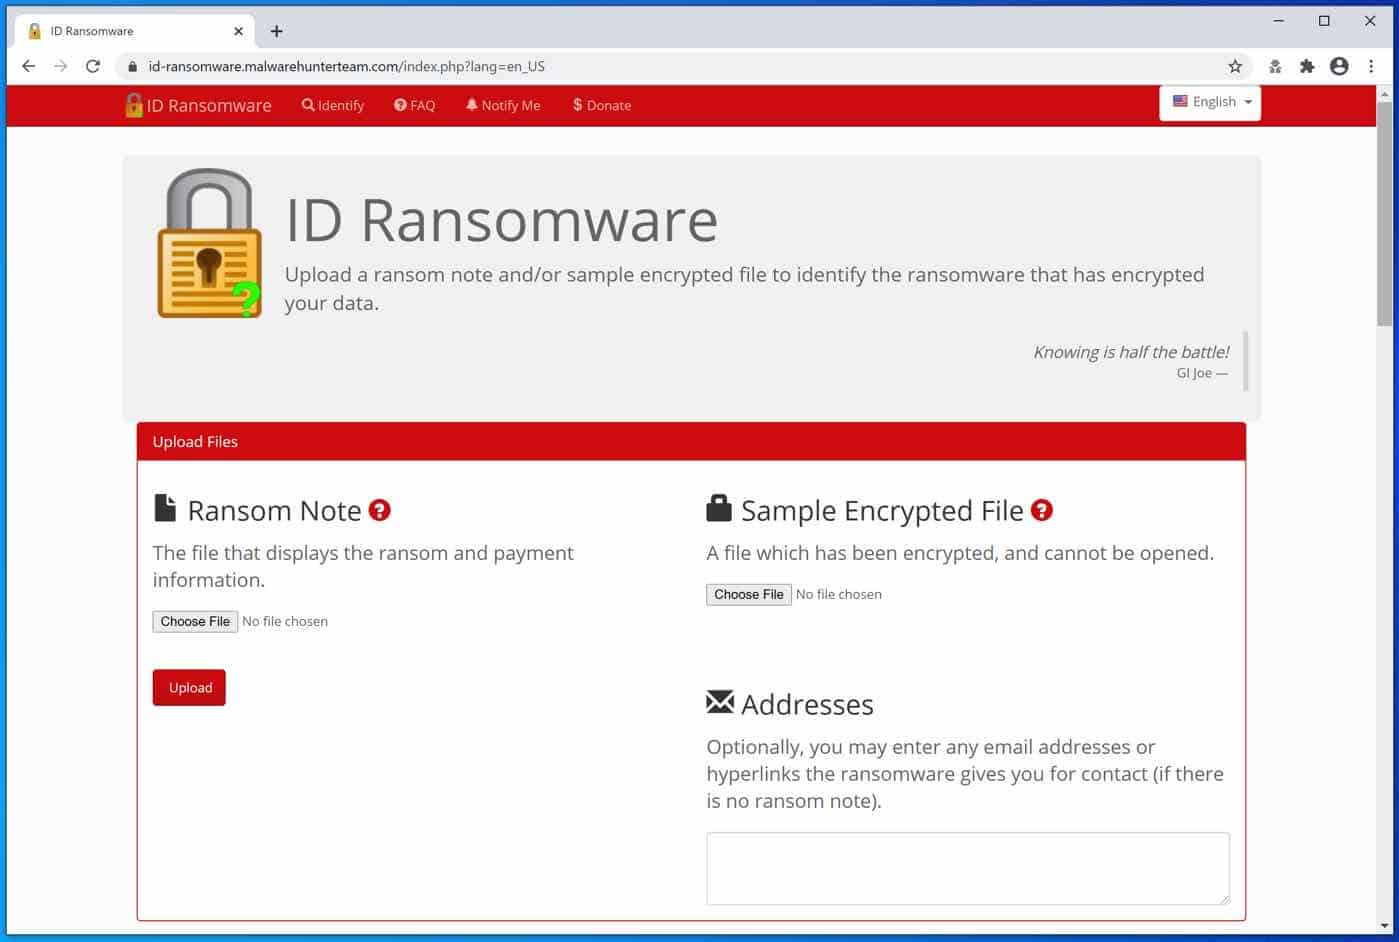 id-ransomware website